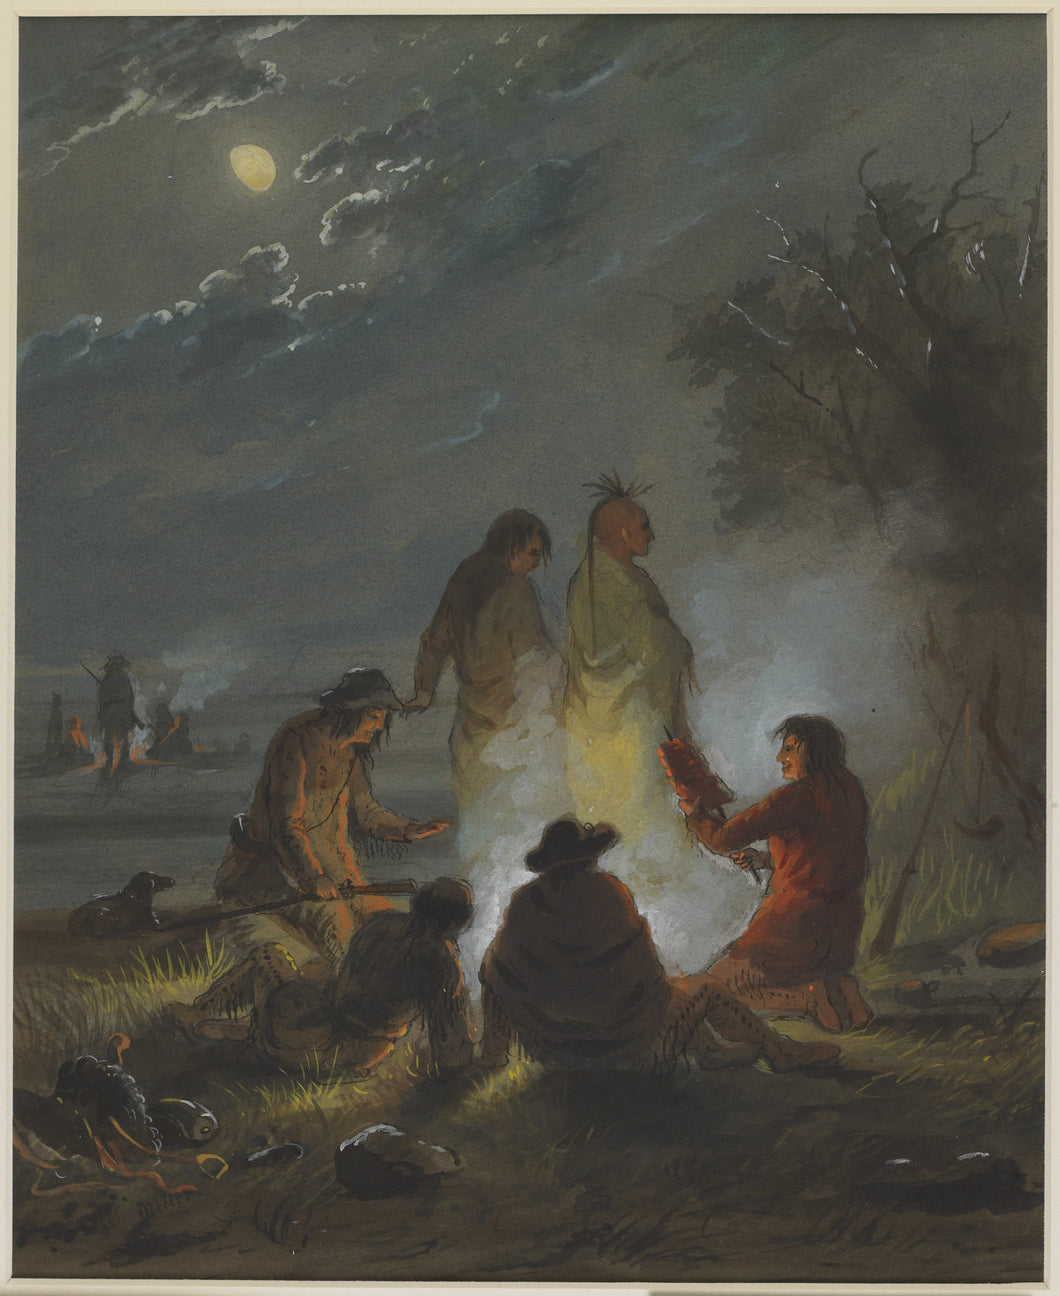 Alfred Jacob Miller, Campfire